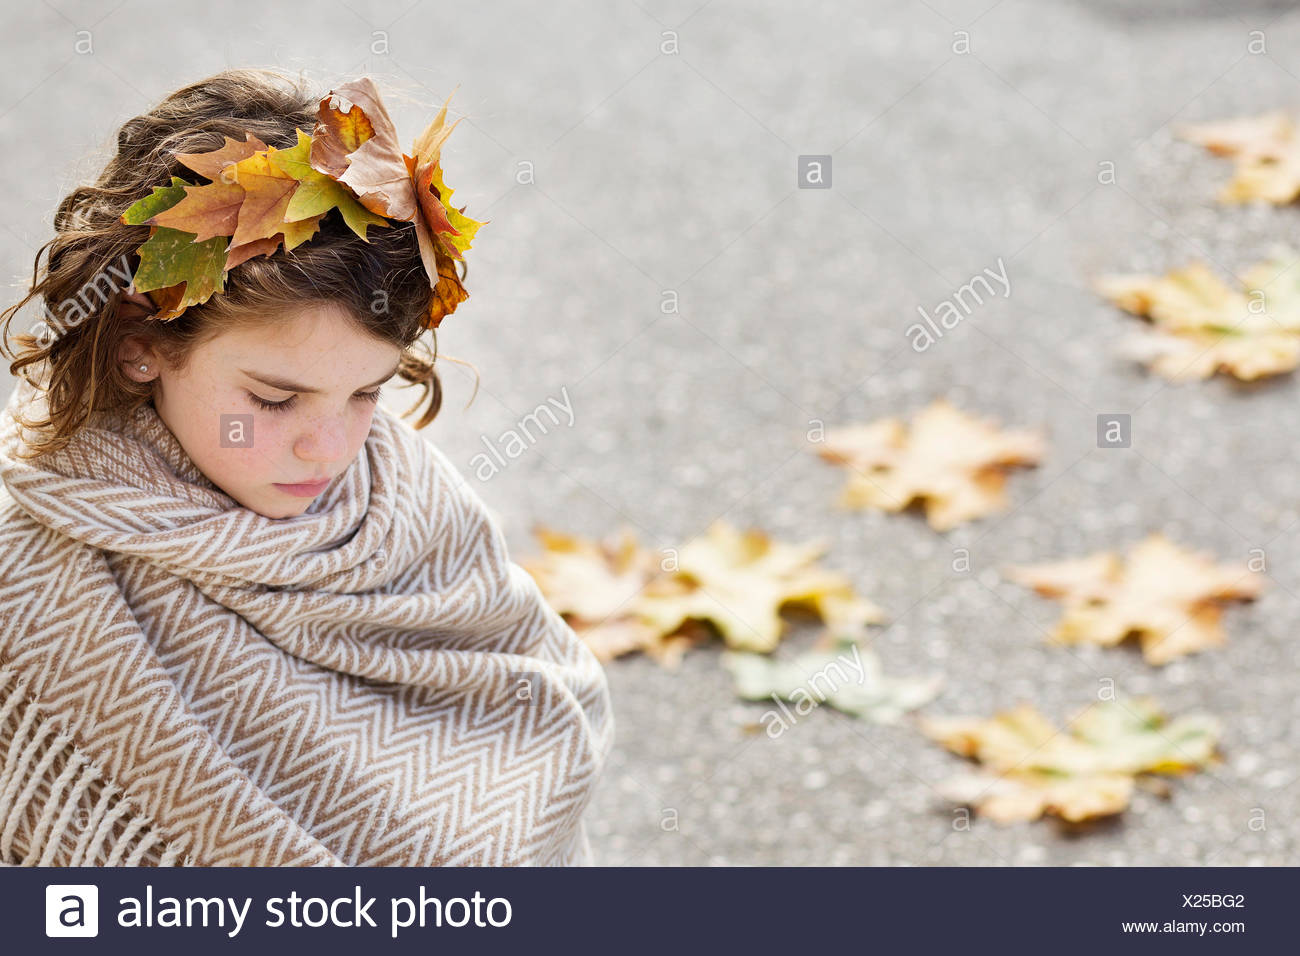 Girl wrapped in a blanket wearing headdress made of autumn leaves - Stock Image